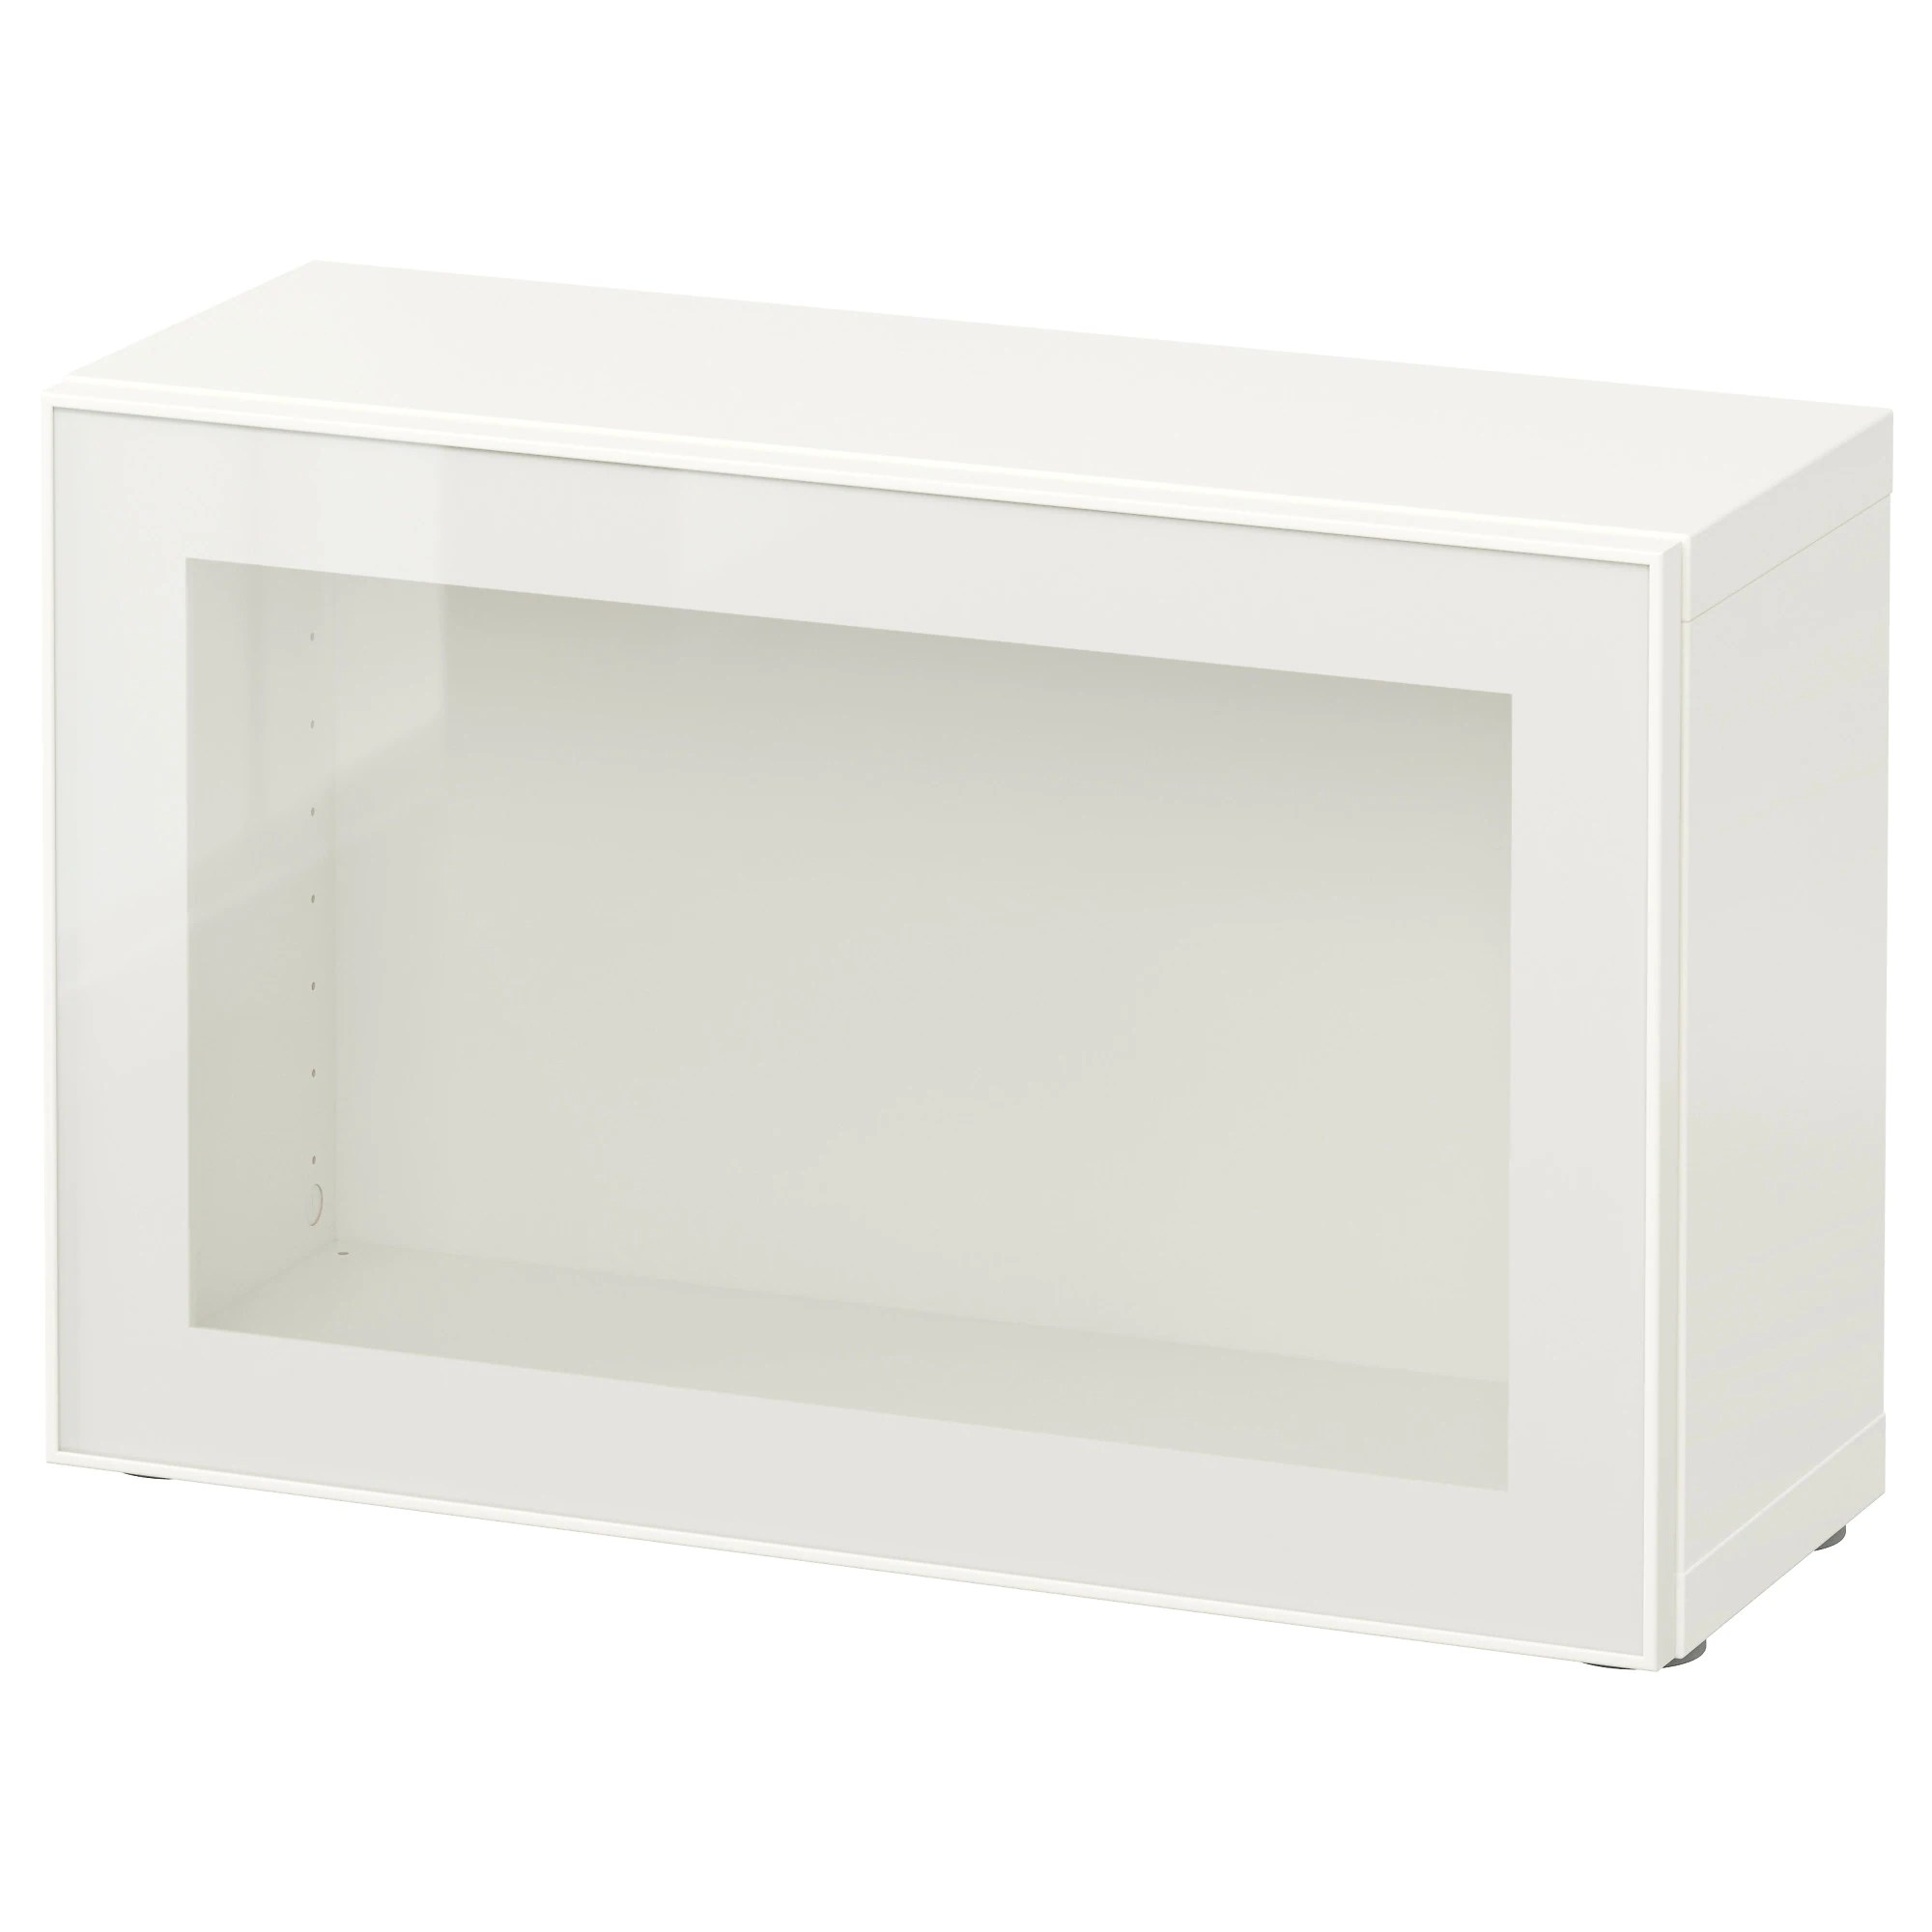 Etagere Besta Ikea BestÅ Shelf Unit With Glass Door White Glassvik White Clear Glass